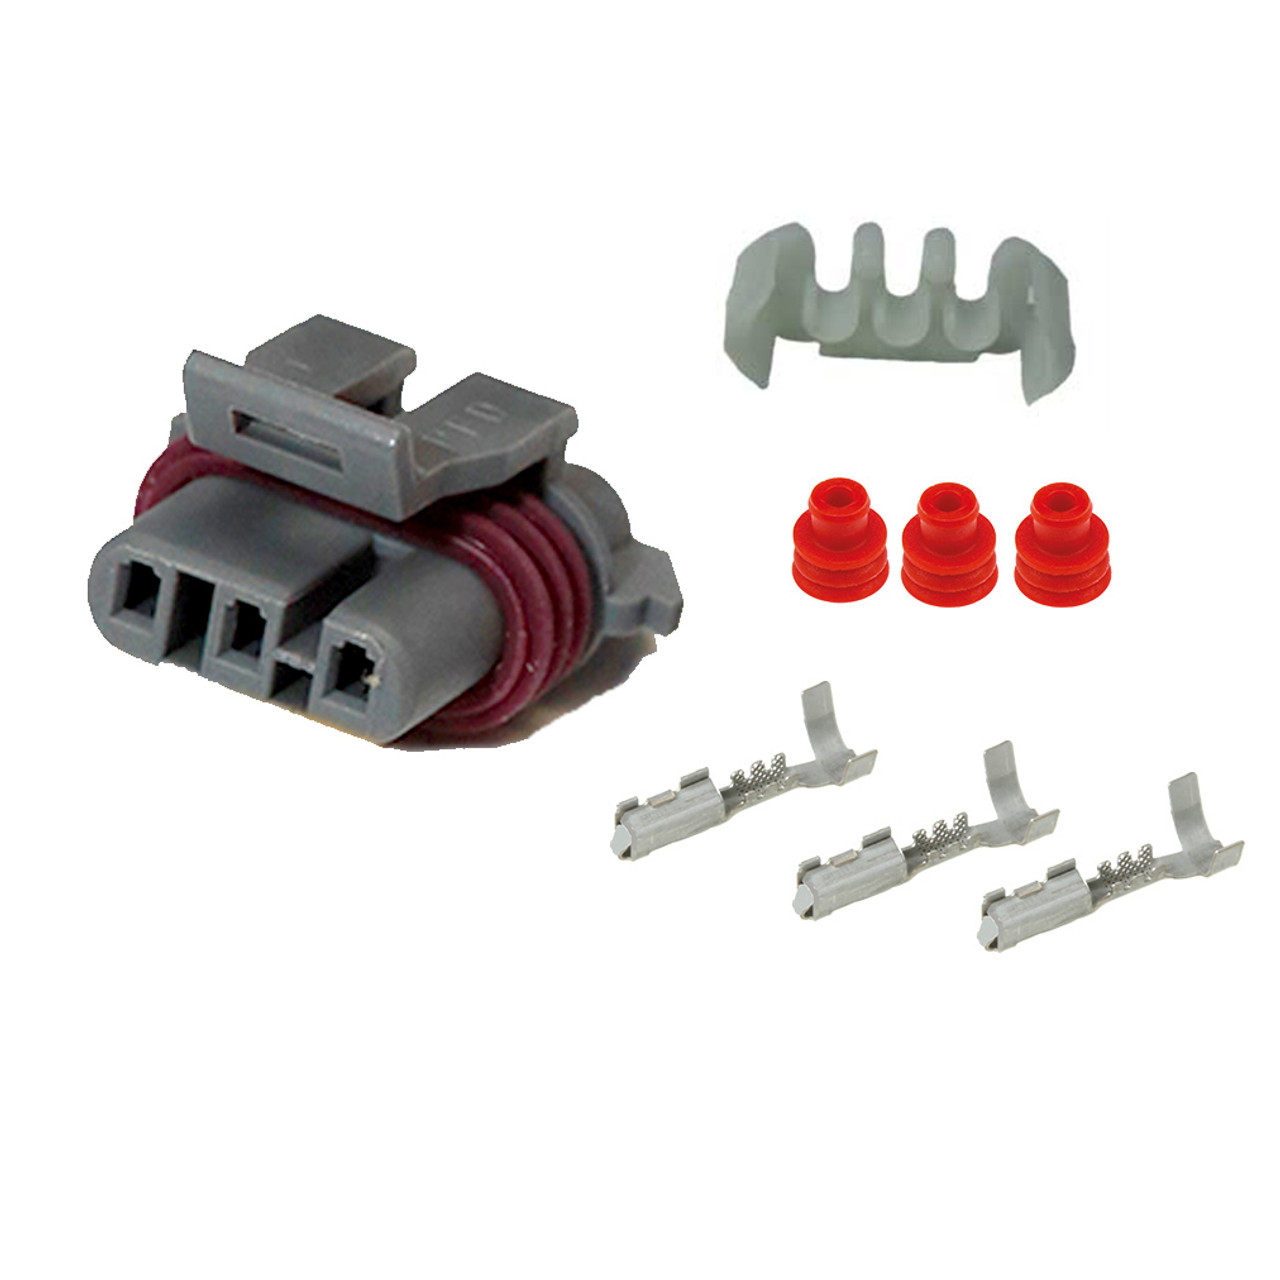 small resolution of map sensor wiring harness female connector kit for gm ls1 ls2 ls6 4253456543 85560 1544226081 jpg